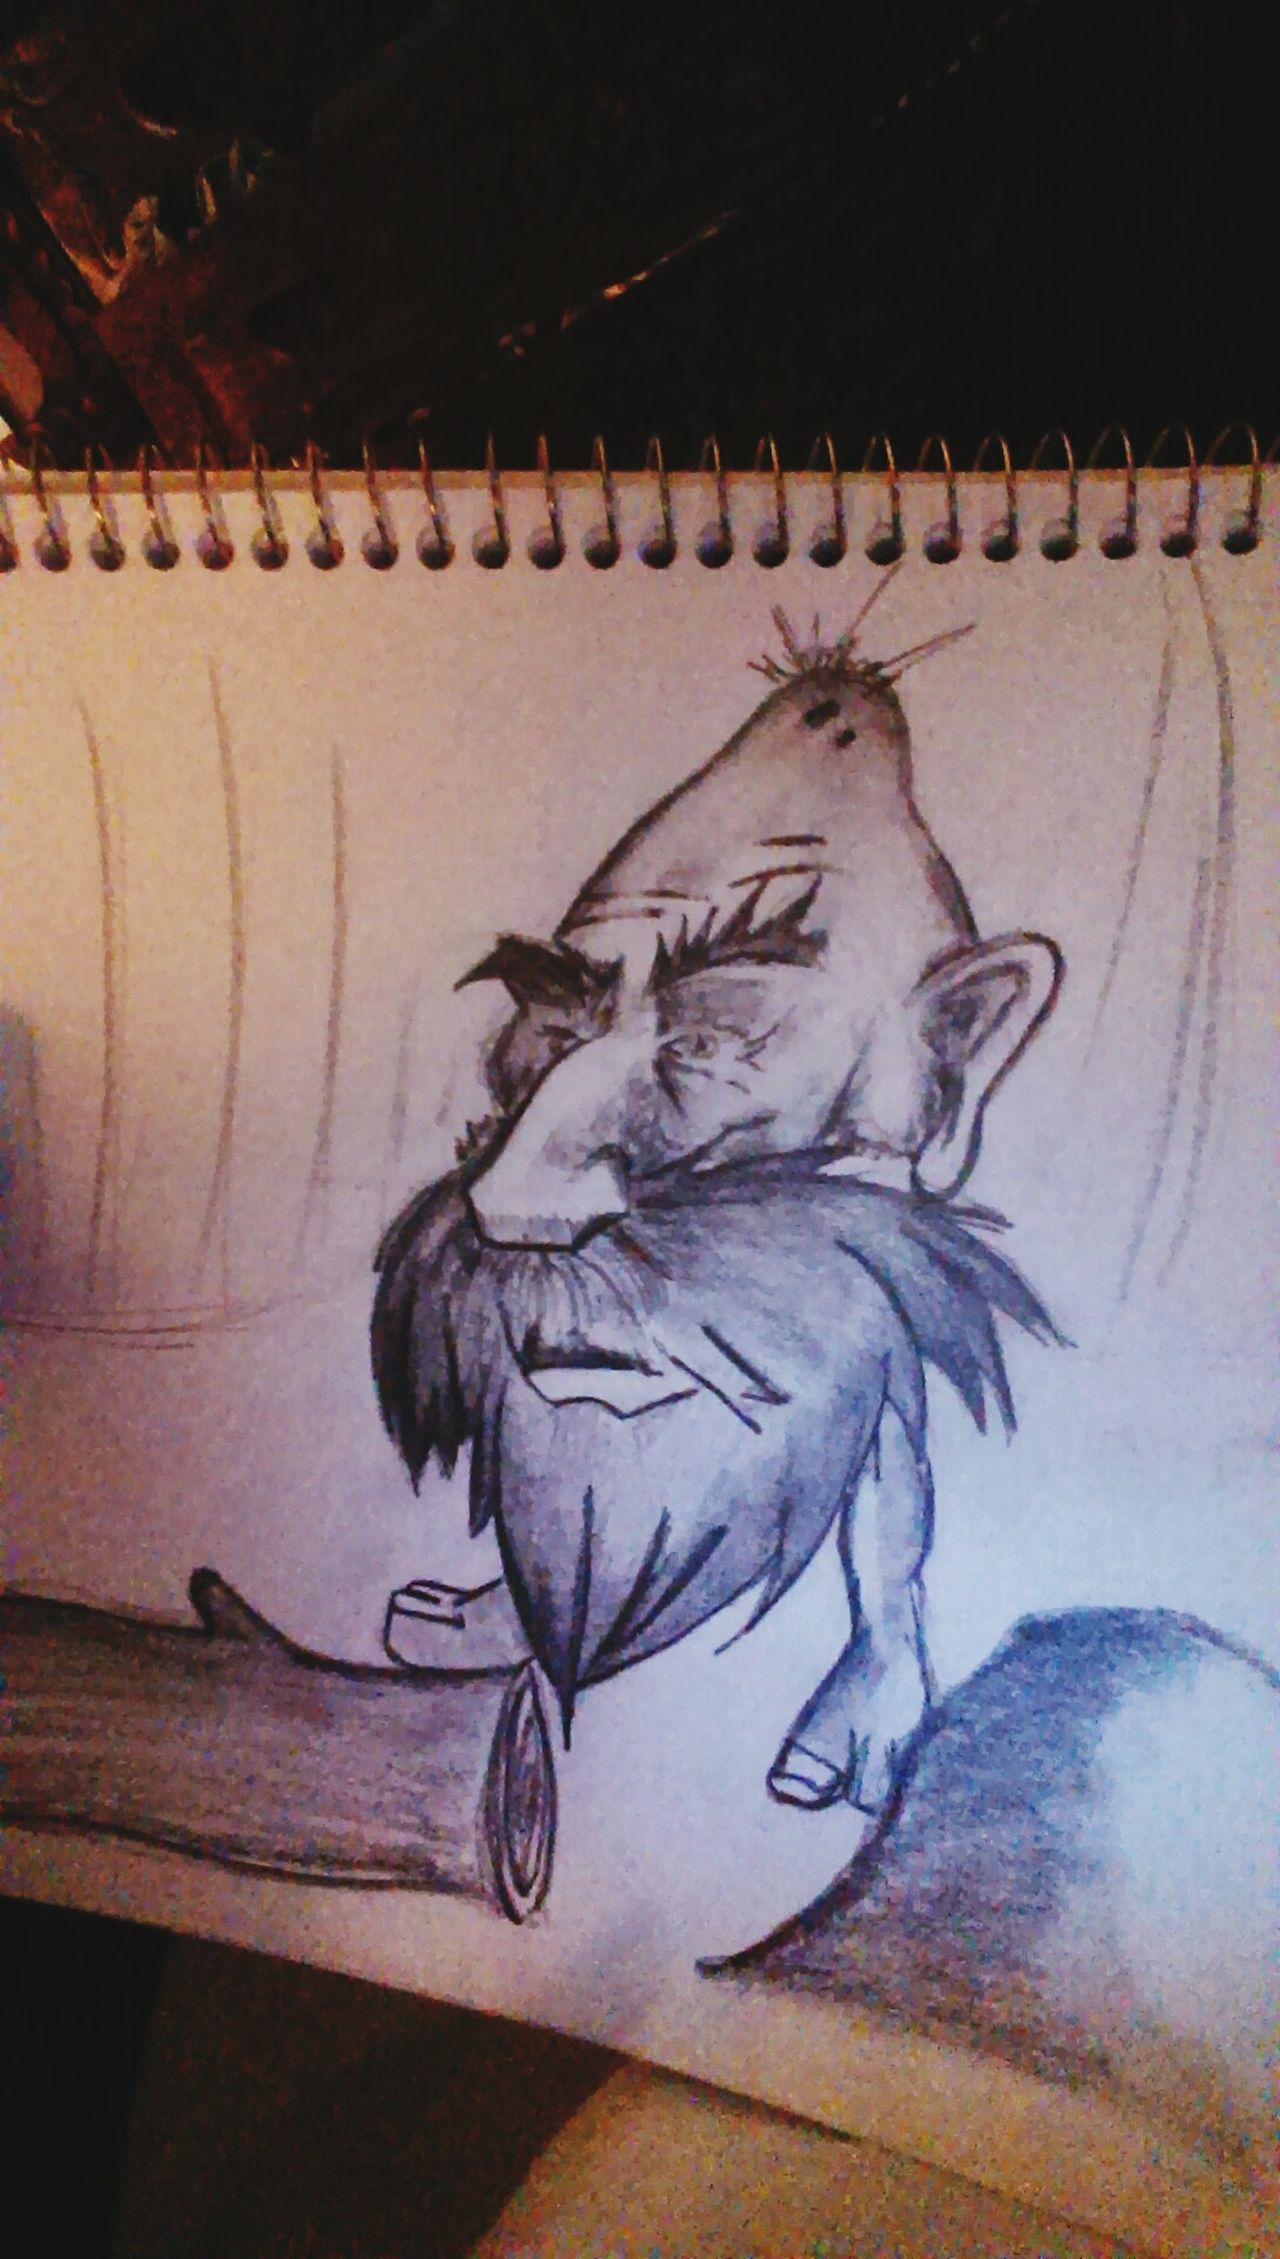 GnomeSayn 1 Hour Sketch Sketch